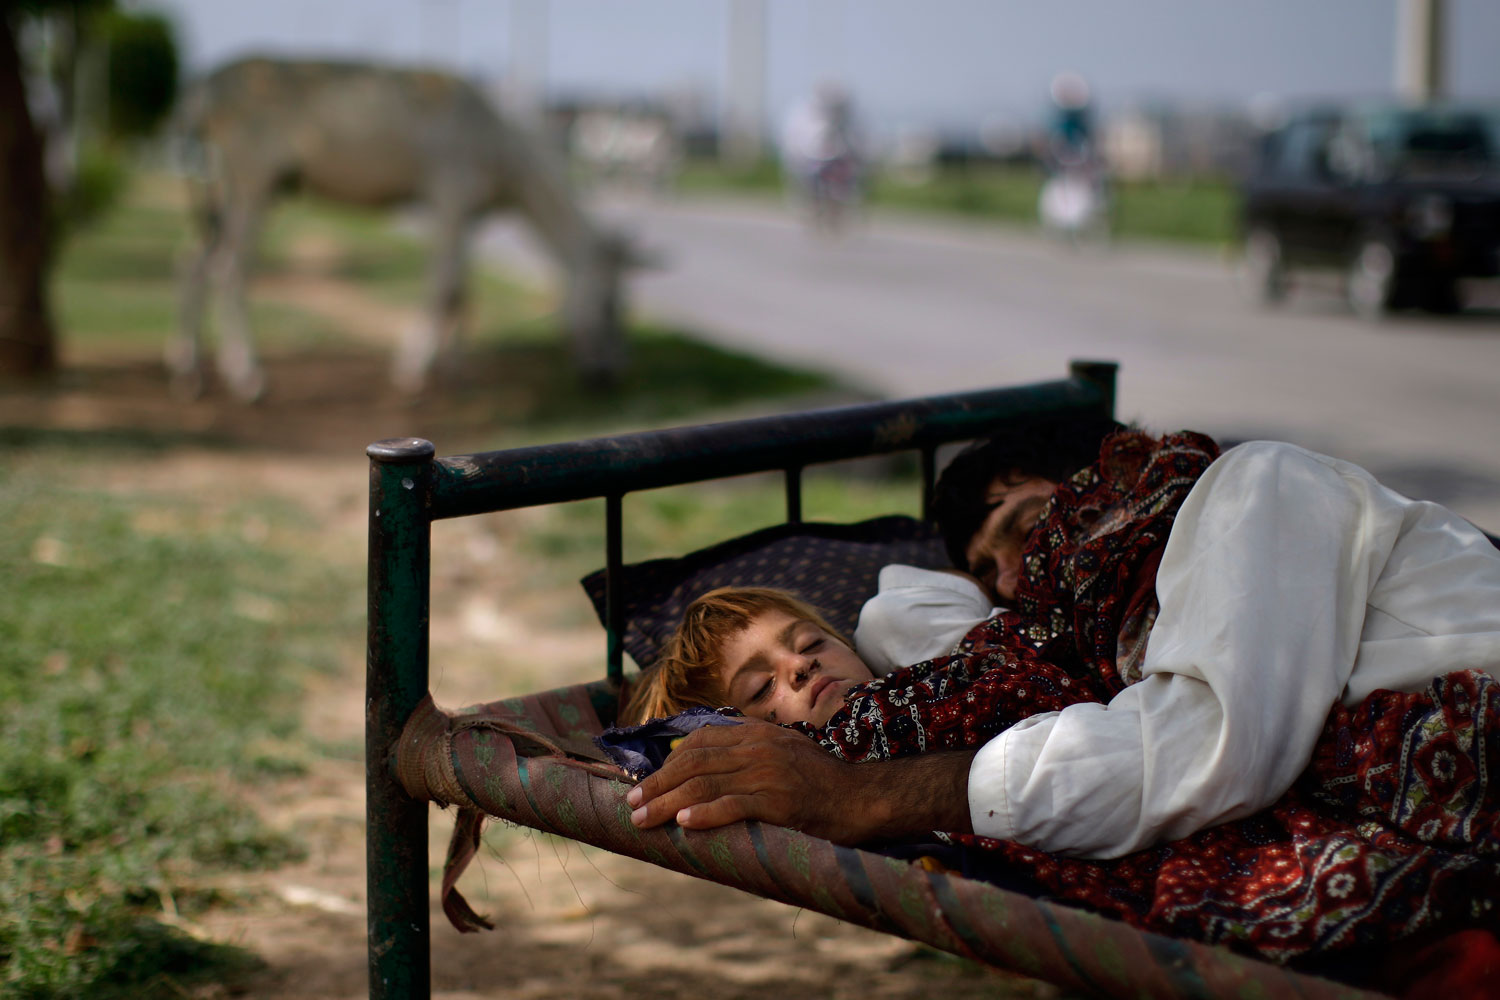 Aug. 16, 2012. A Pakistani man and his daughter sleep on a bed on a street median on the outskirts of Islamabad. Many Pakistanis sleep outdoors to escape the heat during the summer months.